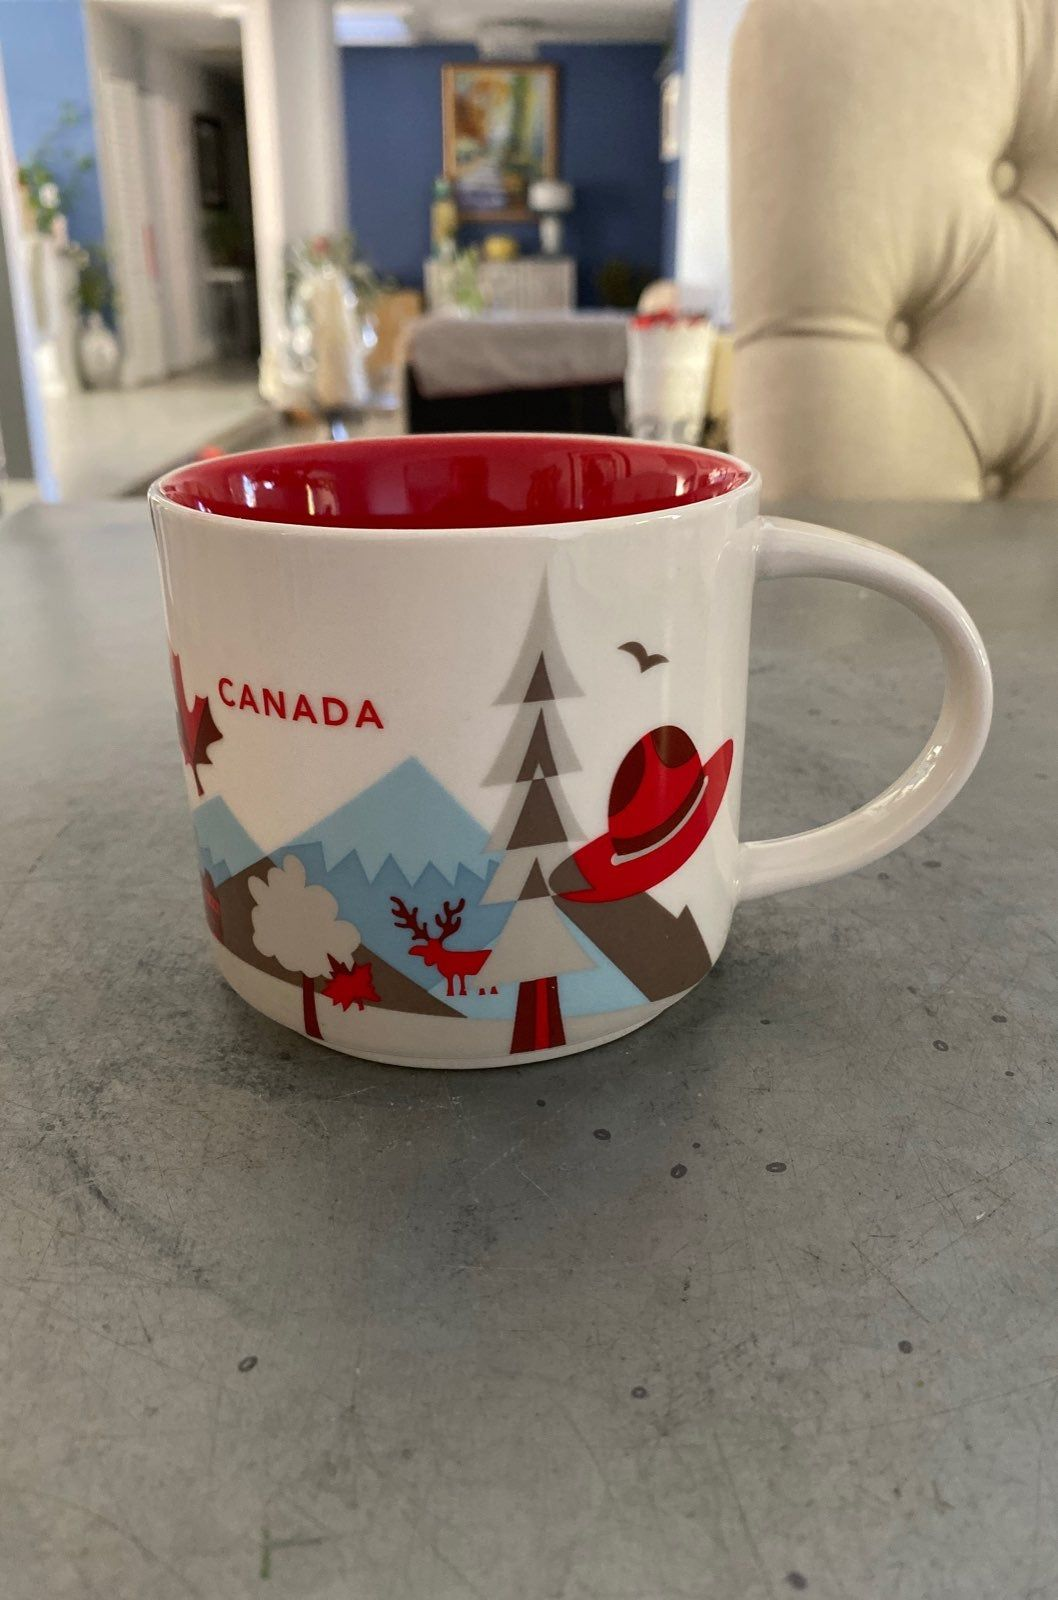 2017 Starbucks You Are Here Canada coffee mug. No chips or